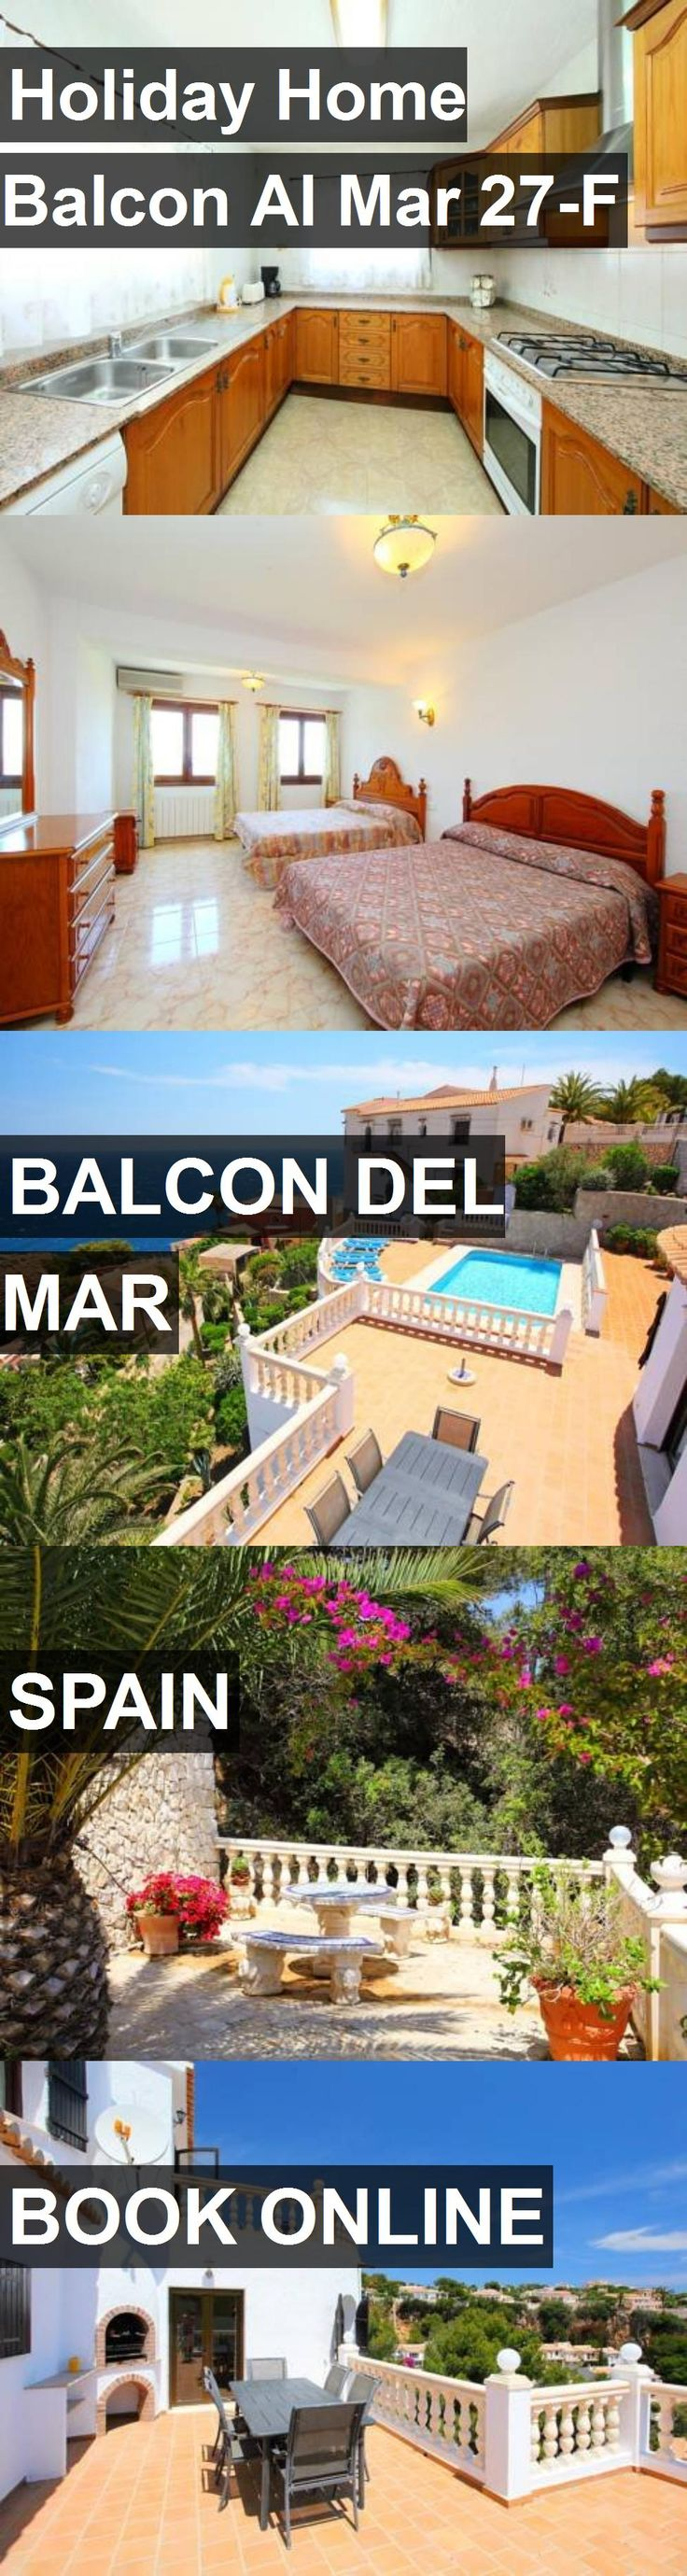 Hotel Holiday Home Balcon Al Mar 27-F in Balcon del Mar, Spain. For more information, photos, reviews and best prices please follow the link. #Spain #BalcondelMar #HolidayHomeBalconAlMar27-F #hotel #travel #vacation